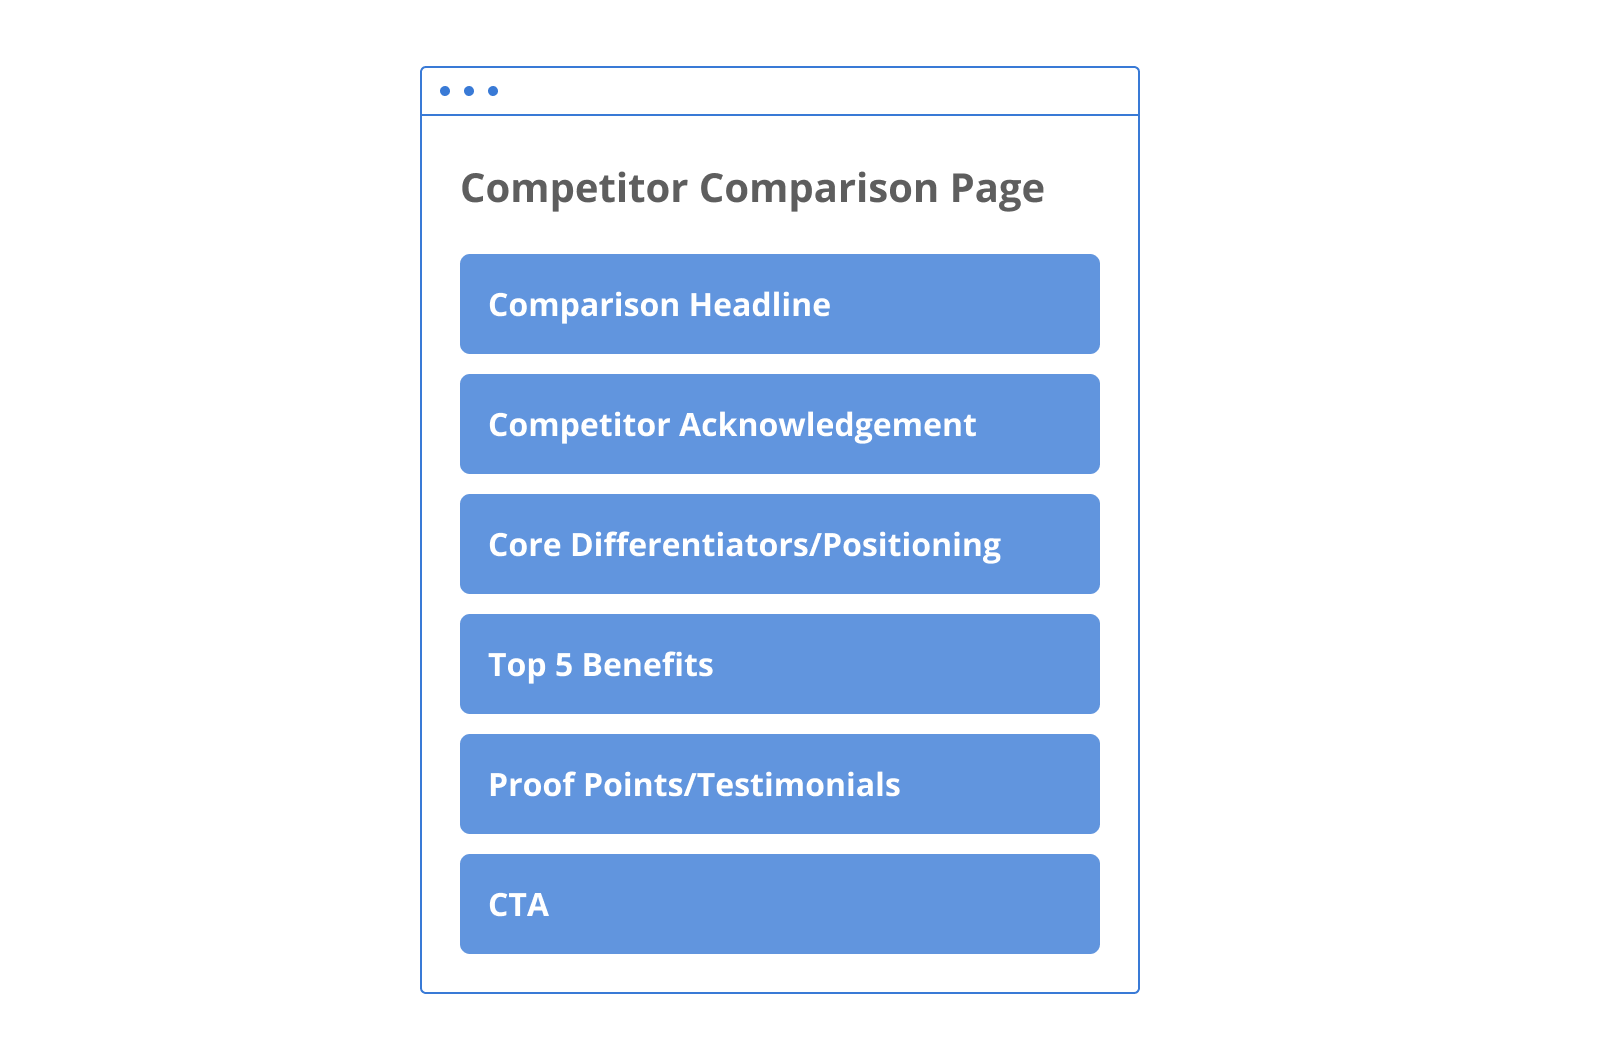 B2B SaaS competitor comparison page wireframe: Comparison Headline, Competitor Acknowledgement, Core Differentiators/Positioning, Top 5 Benefits, Proof Points/Testimonials, CTA.